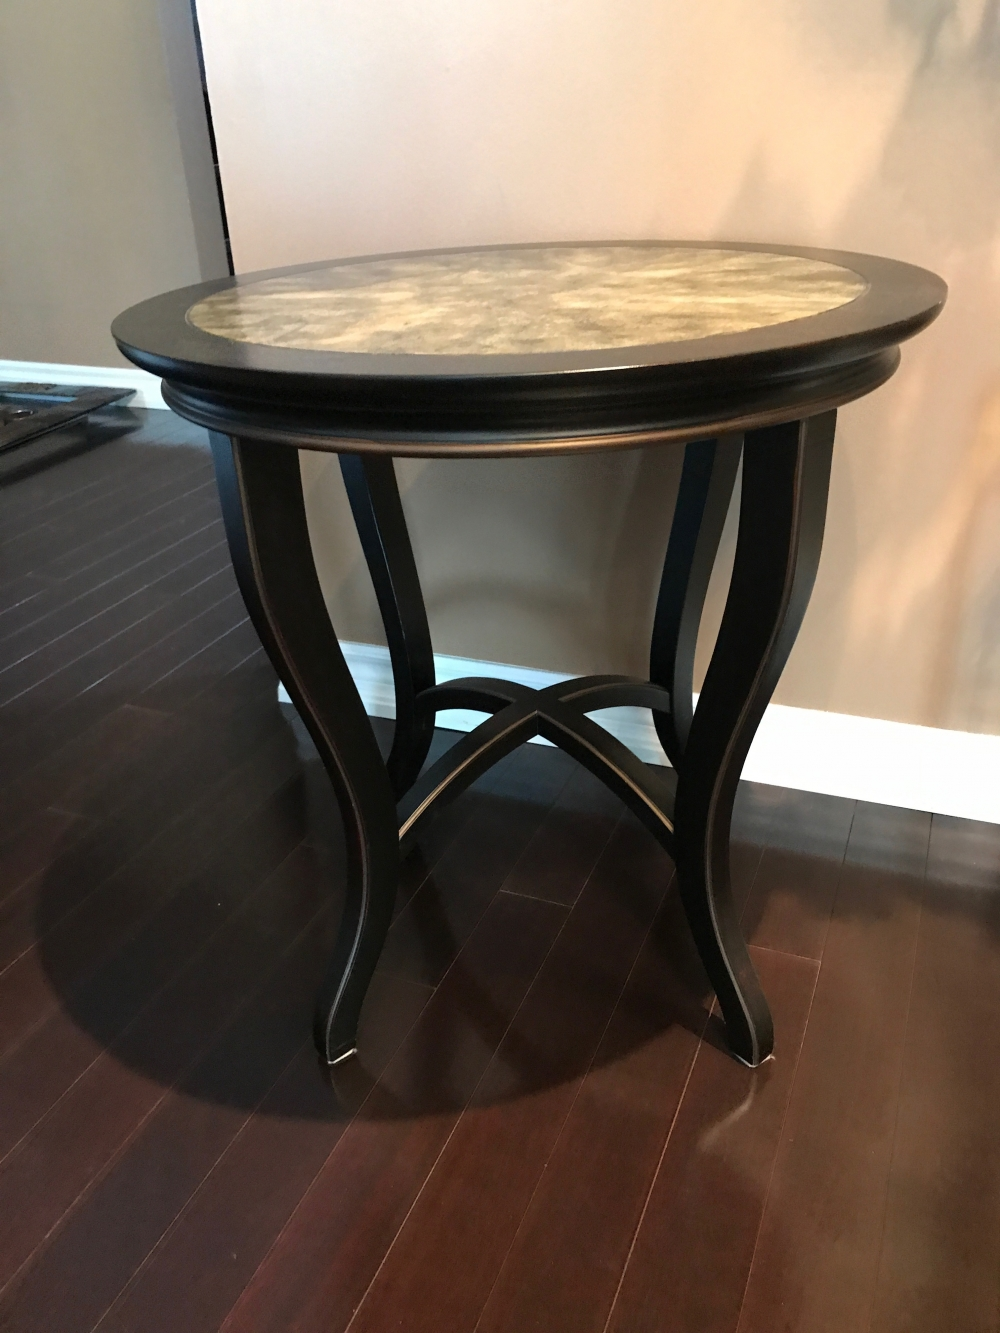 small accent table nesting tables furniture antique glass side white and silver coffee round occasional gold metal drum end mirrored cocktail black brass ethan allen vintage lamps